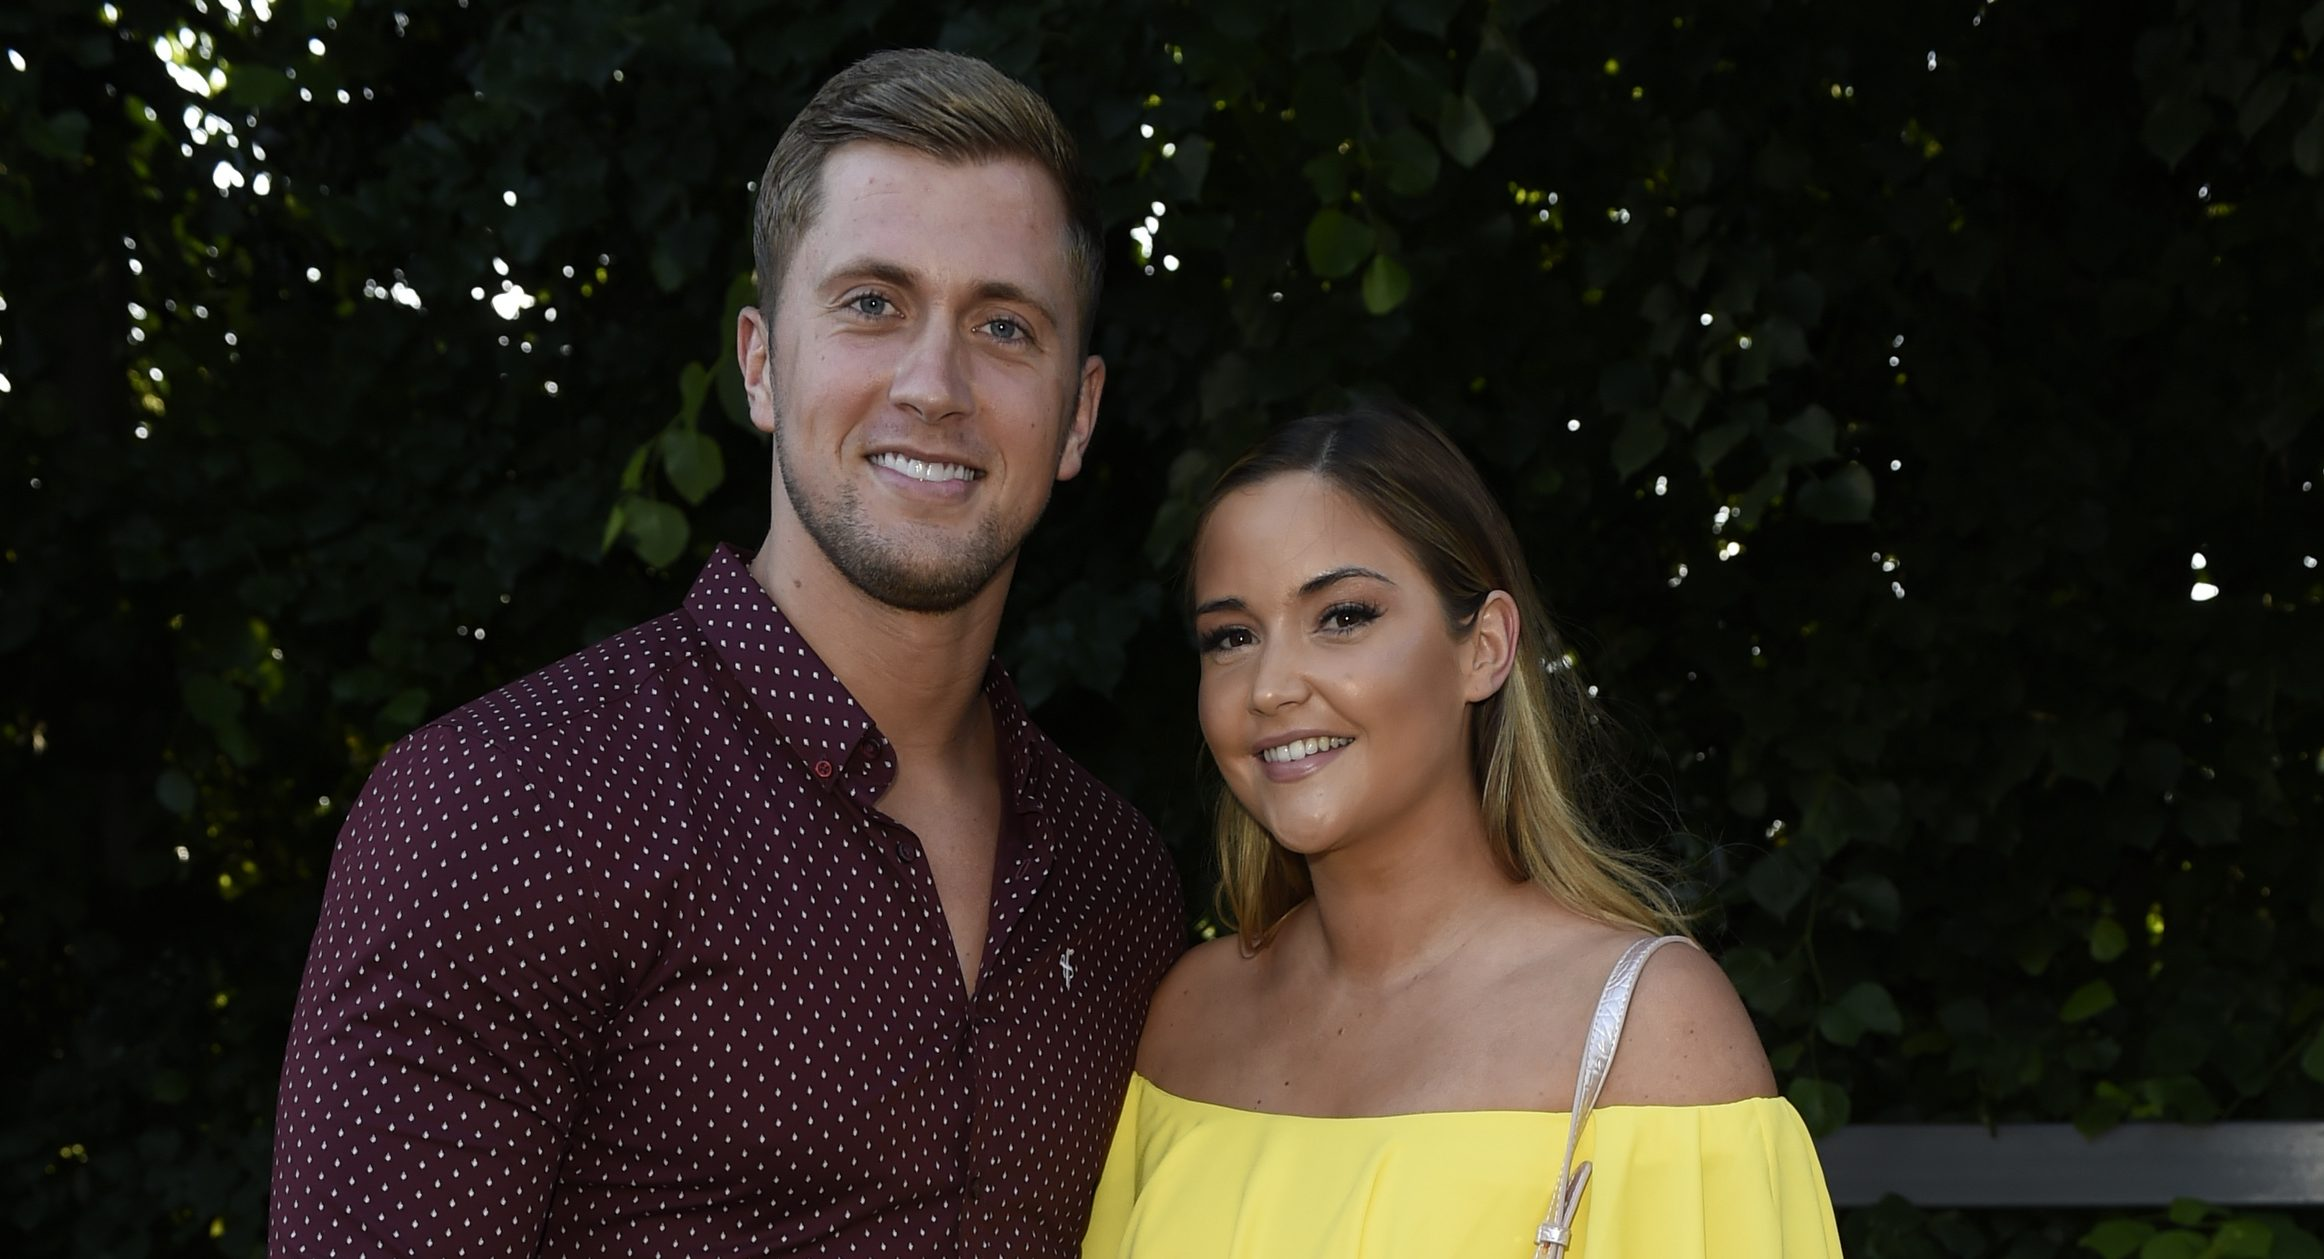 I'm A Celeb winner Jacqueline Jossa 'turns down lucrative TV deals to concentrate on marriage'